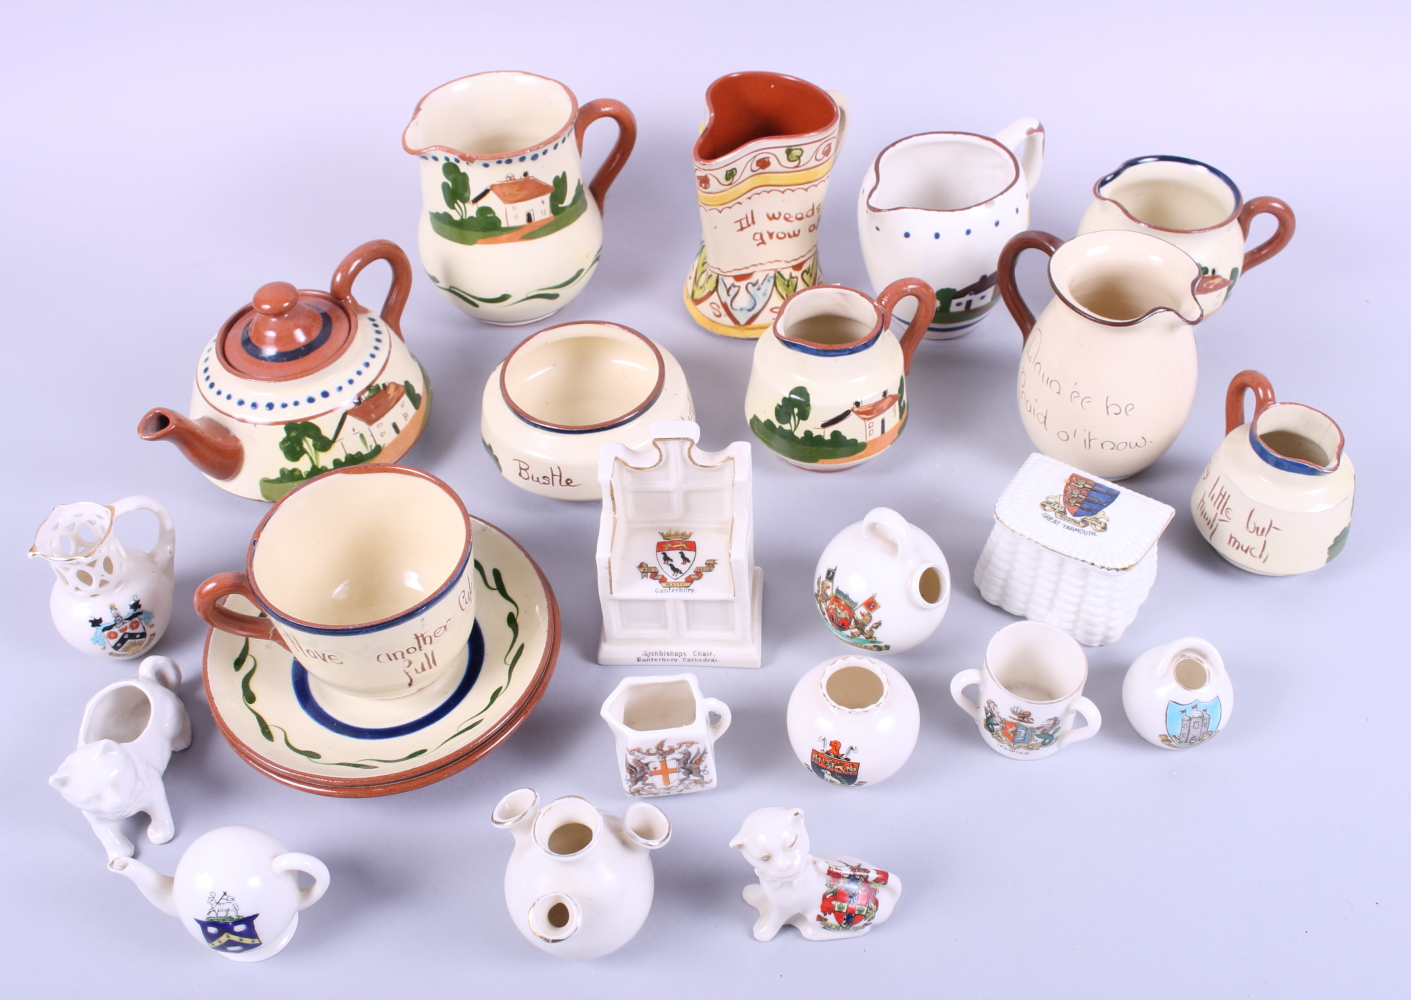 Lot 54 - A collection of Torquay/Mottoware pottery and a selection of crested china, various